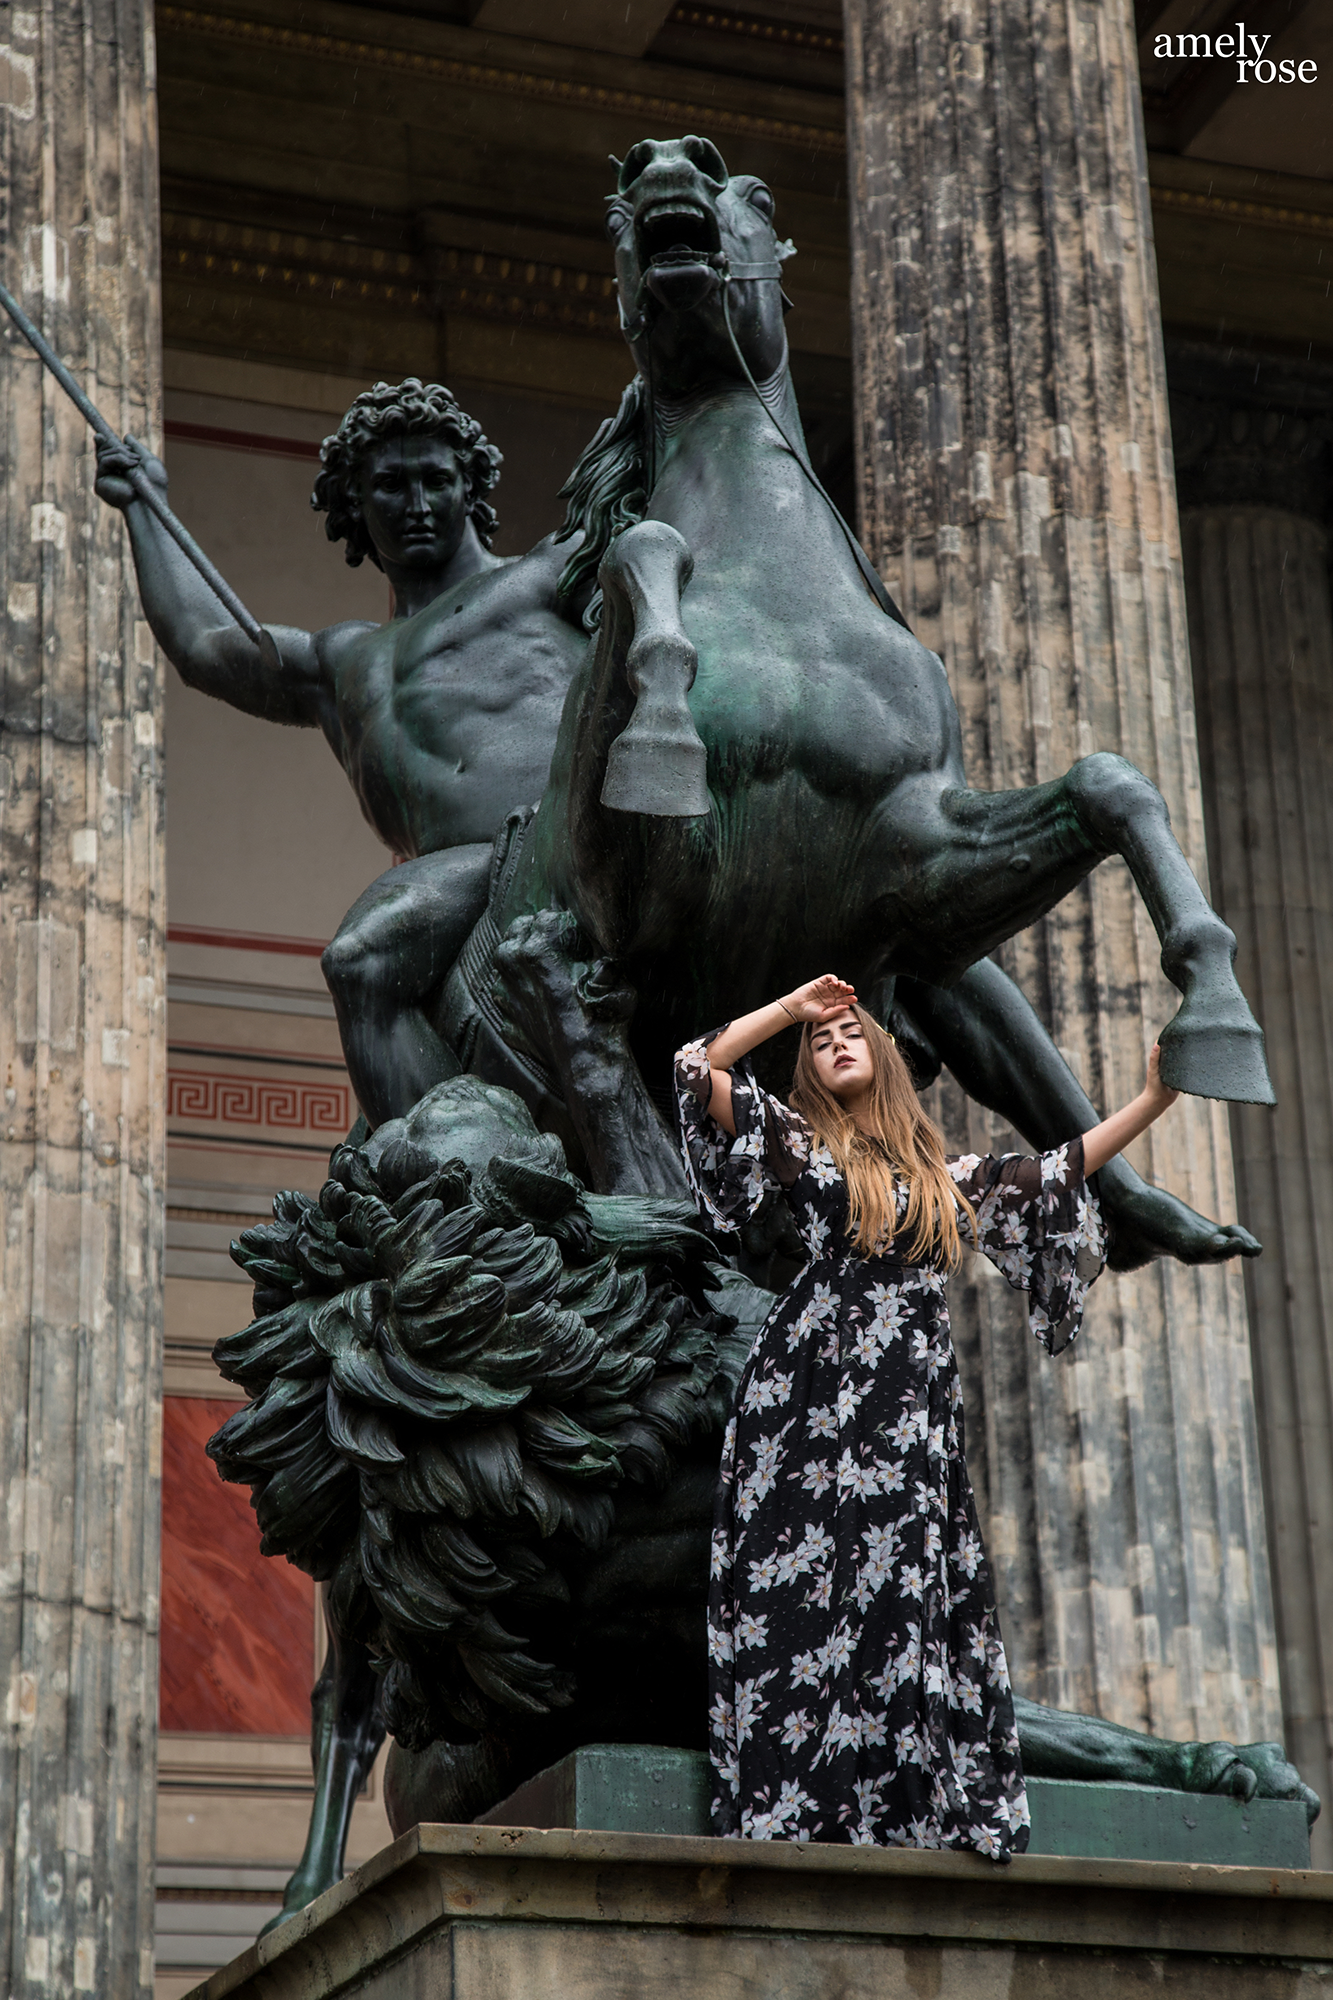 amely rose, fashionblogger in a classy maxidress in berlin - bw fashion editorial and photoshooting - statue